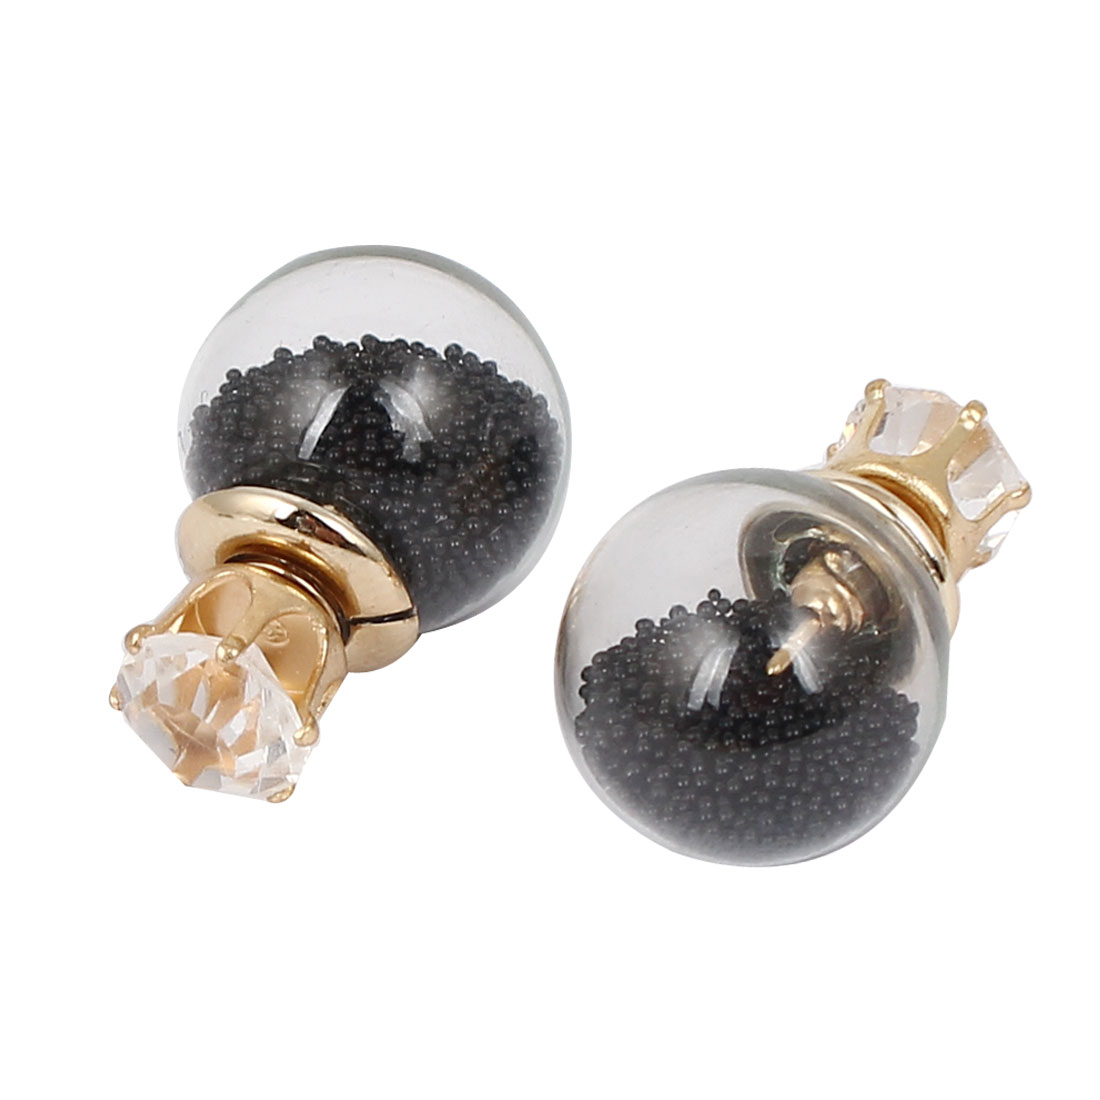 Women Faux Crystal Decor Round Bulb Design Double Side Stud Earrings Black Pair